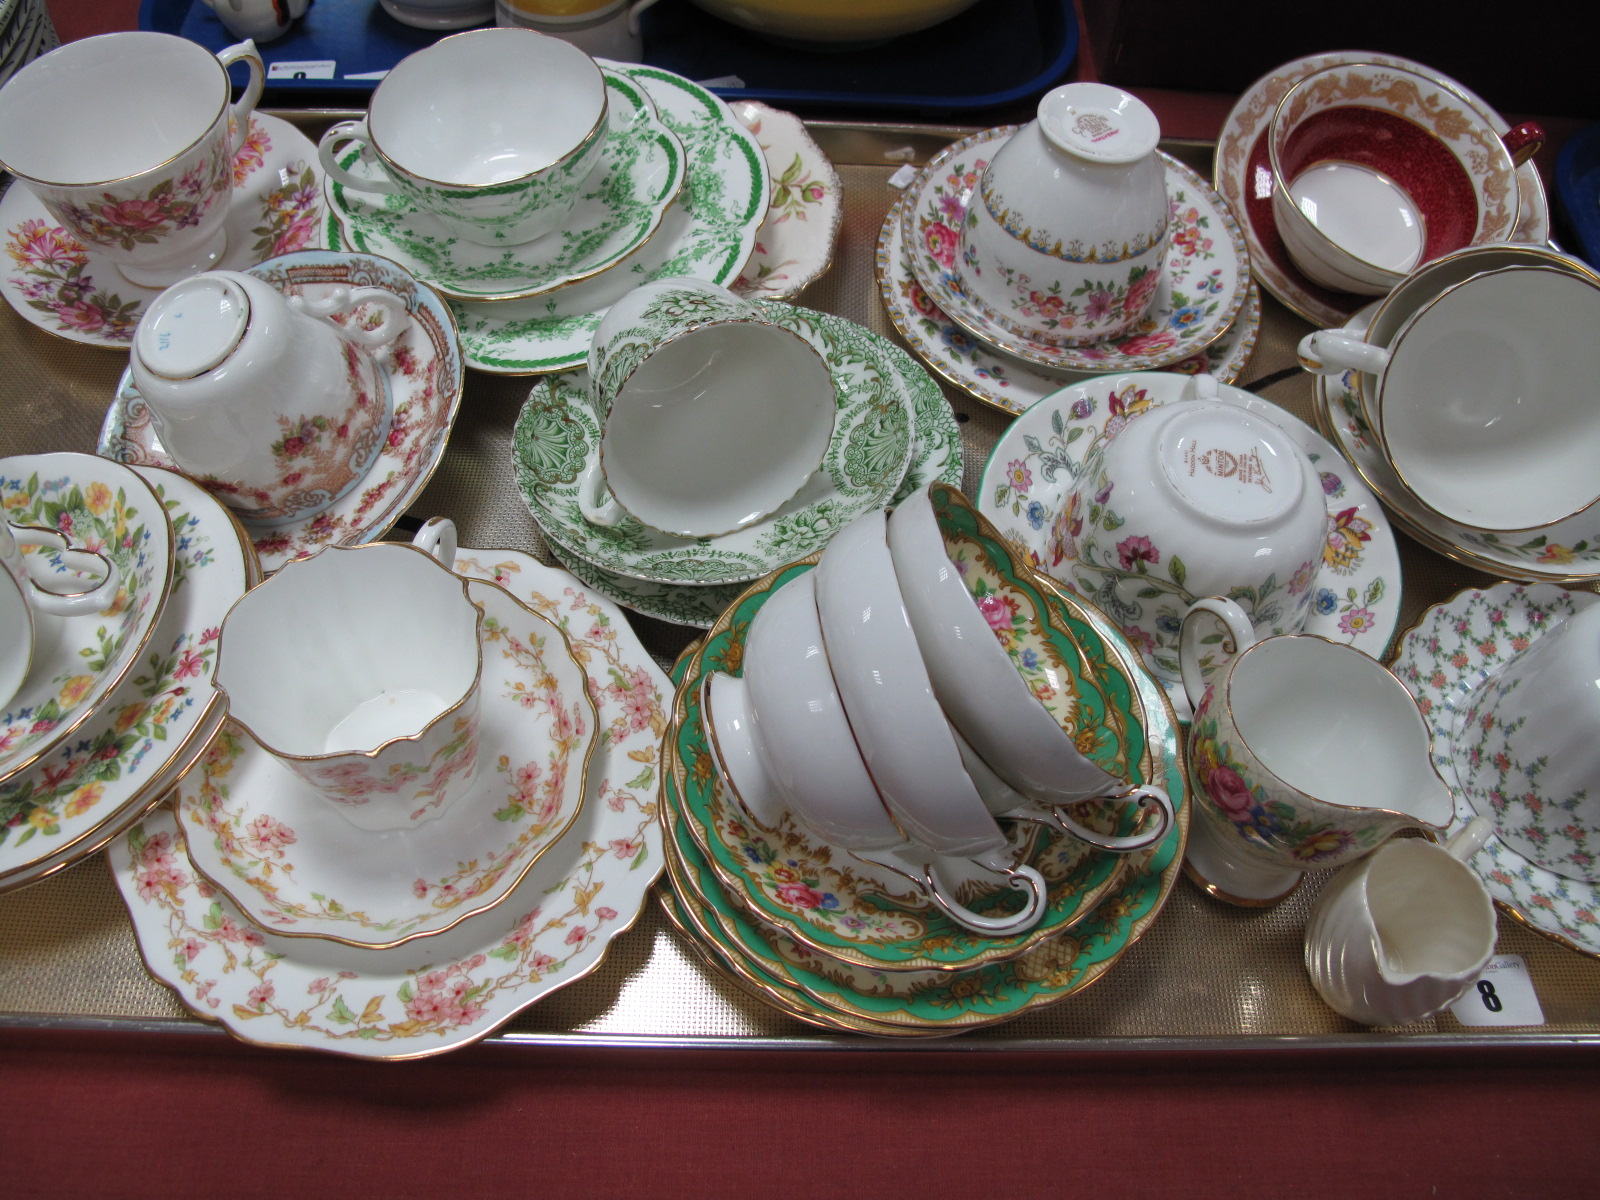 Lot 8 - Colclough, Paragon, Spode, Grafton, Minton and Other Tea Ware:- One Box